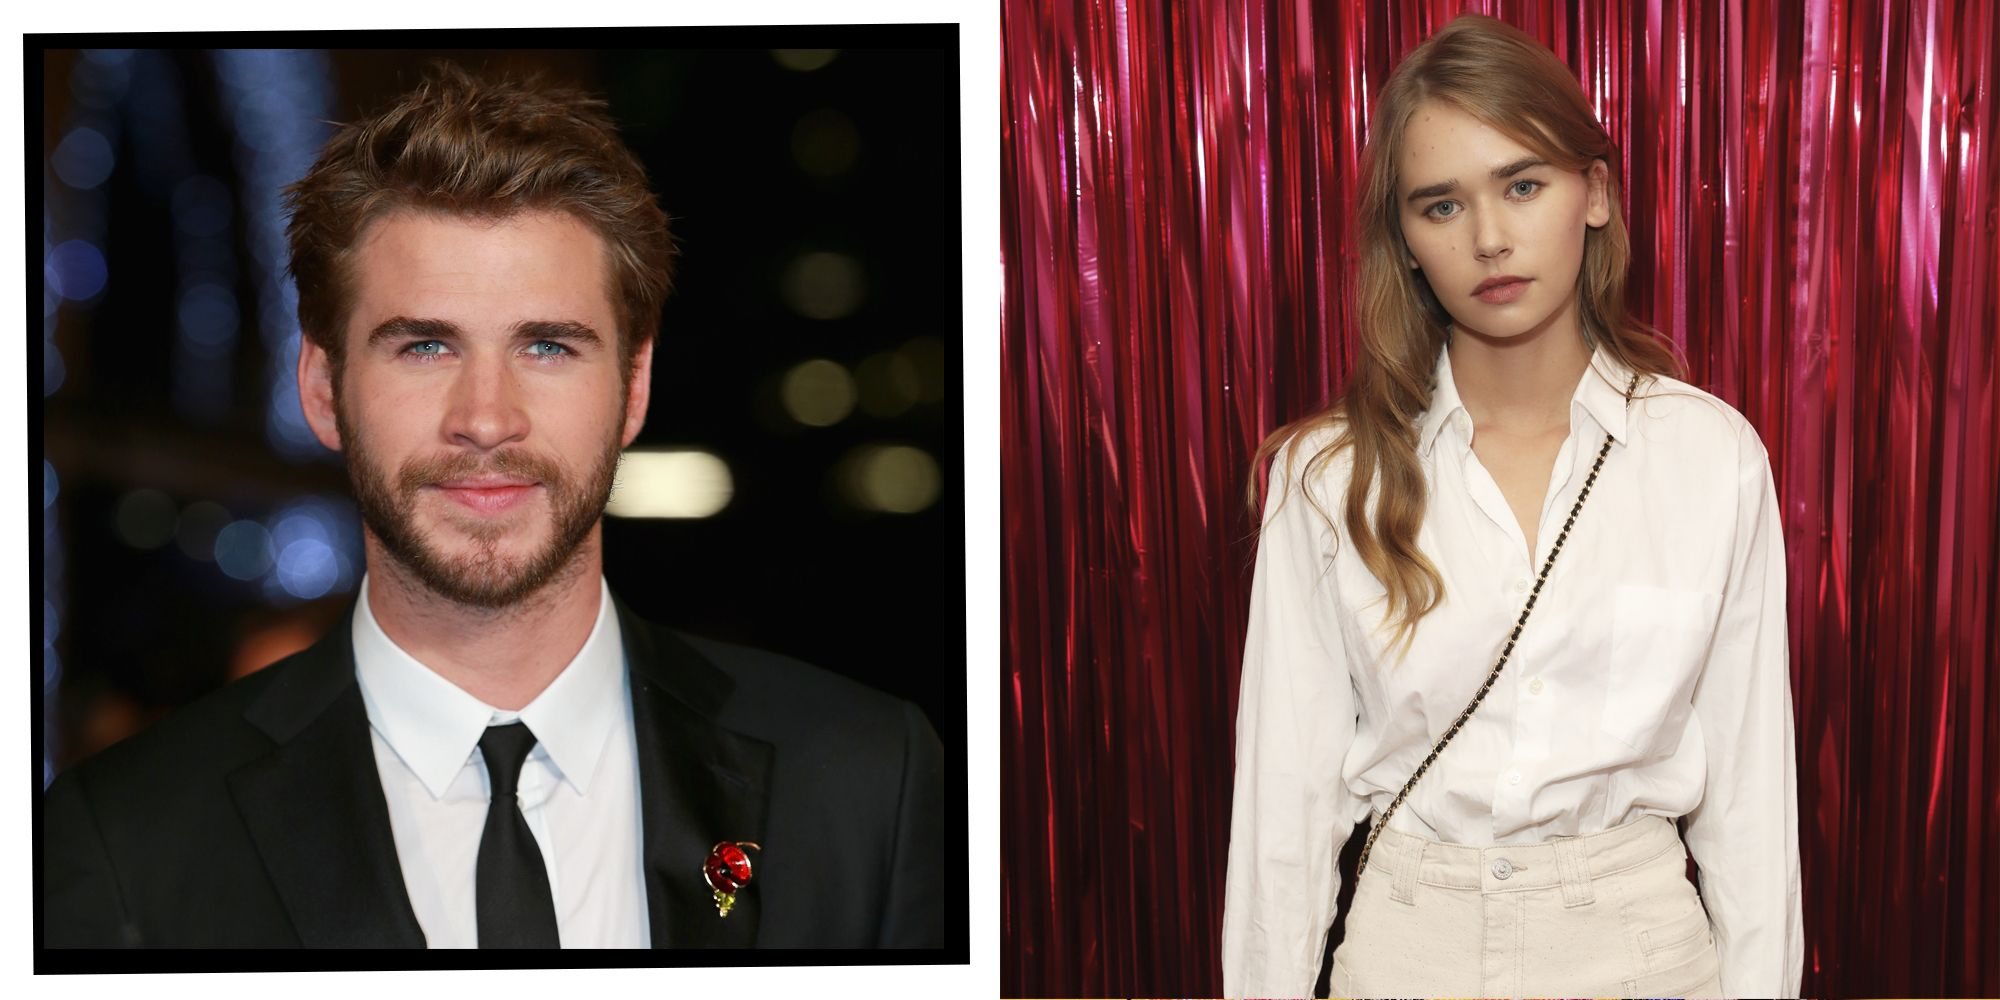 Everything You Need To Know About Liam Hemsworth And Gabriella Brooks's Relationship